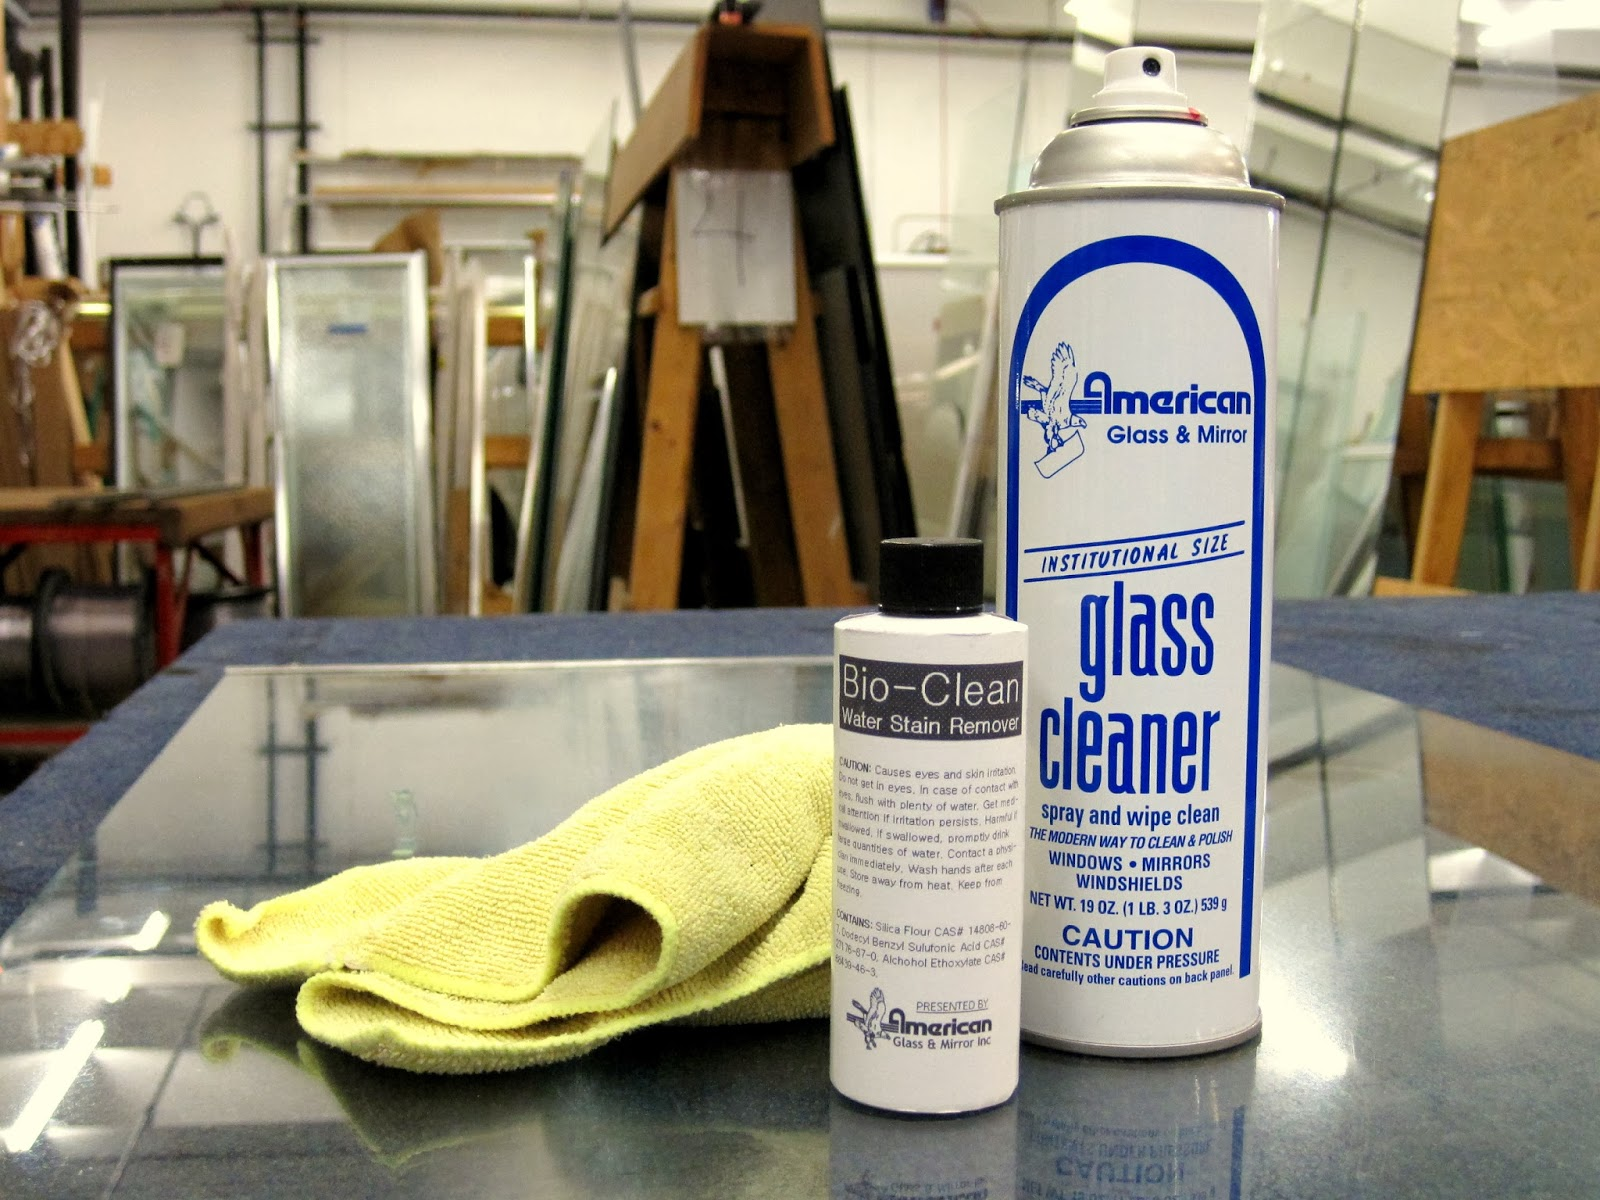 shower door cleaner, limescale remover, bio-clean mn